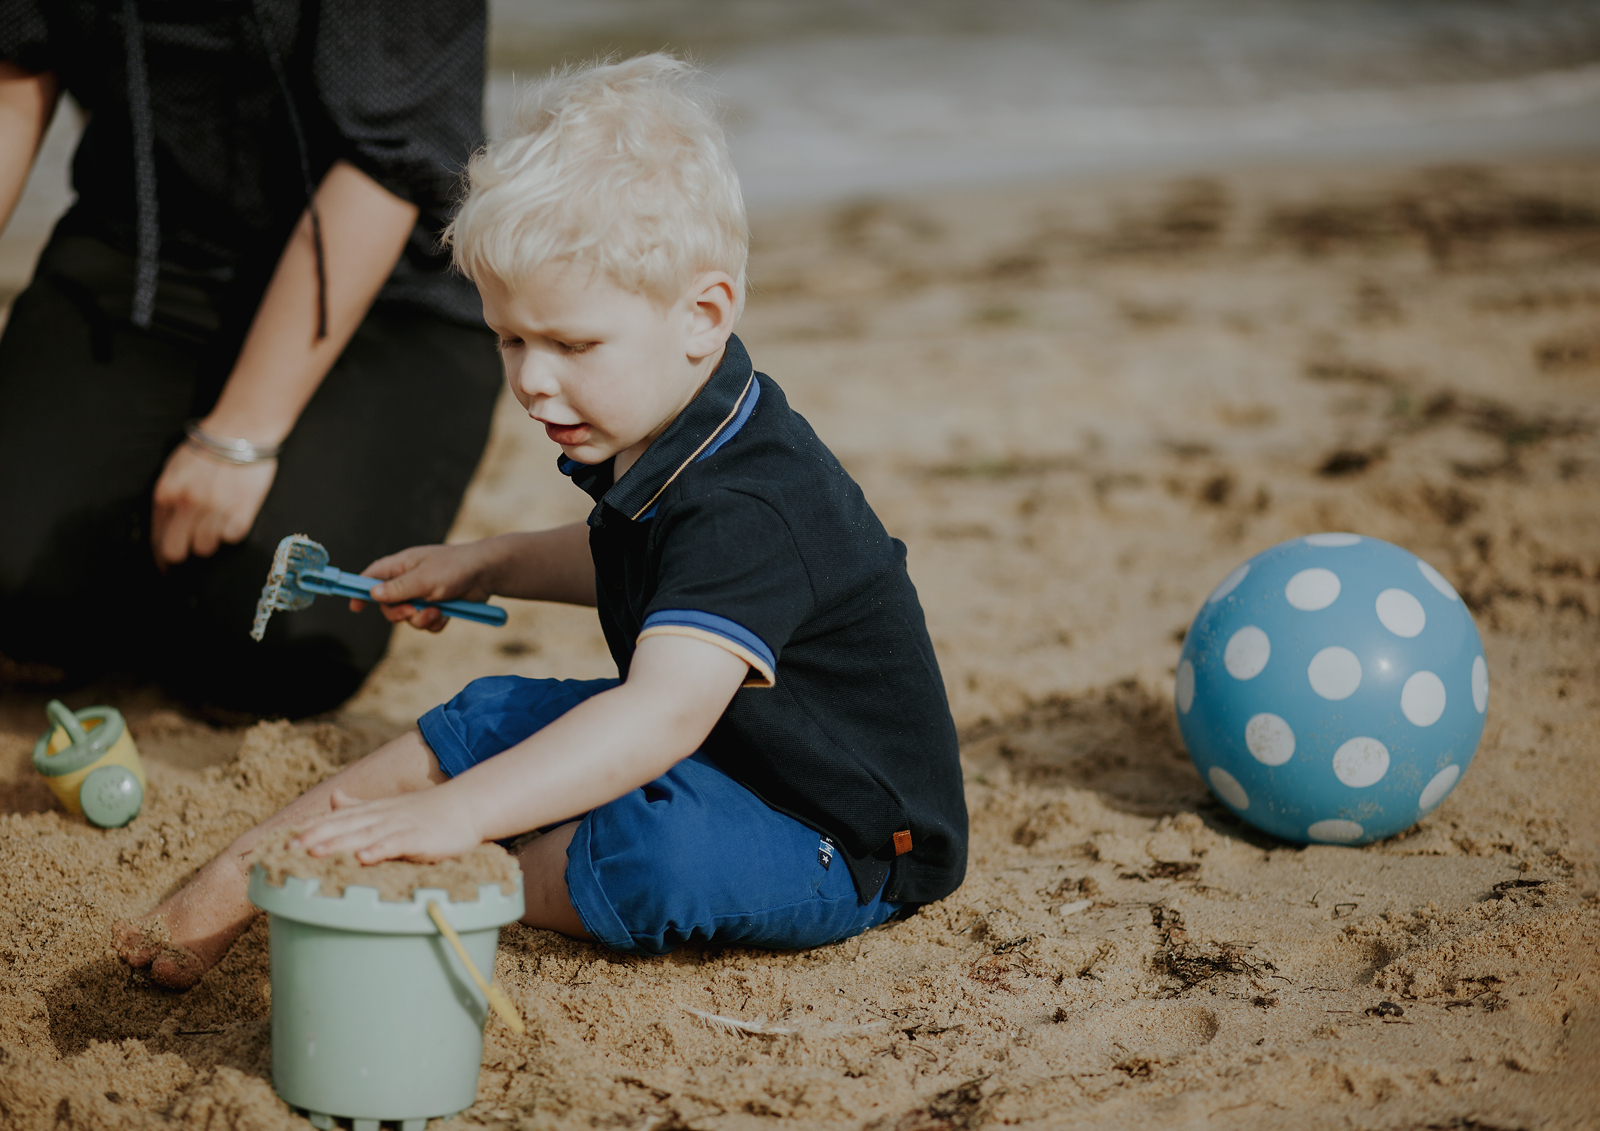 Natural Family Photography on location Melbourne